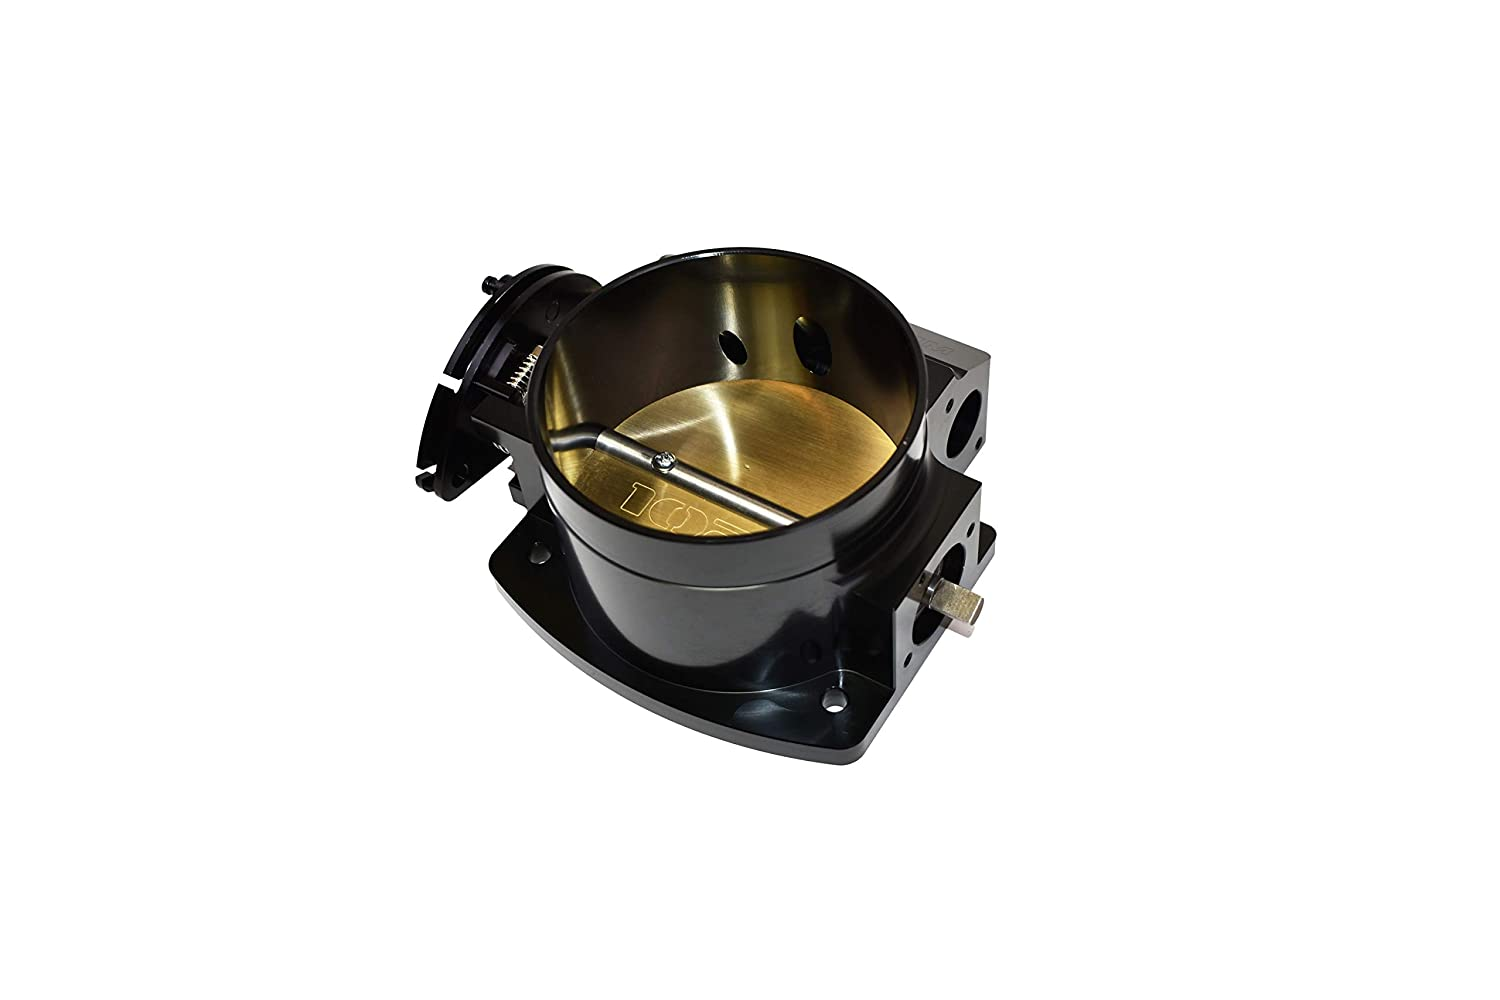 A-Team Performance 4-Bolt Throttle Body Drive By Cable Compatible with Chevy Chevrolet GM LS LS1 LS3 LS6 LSX Black 102mm